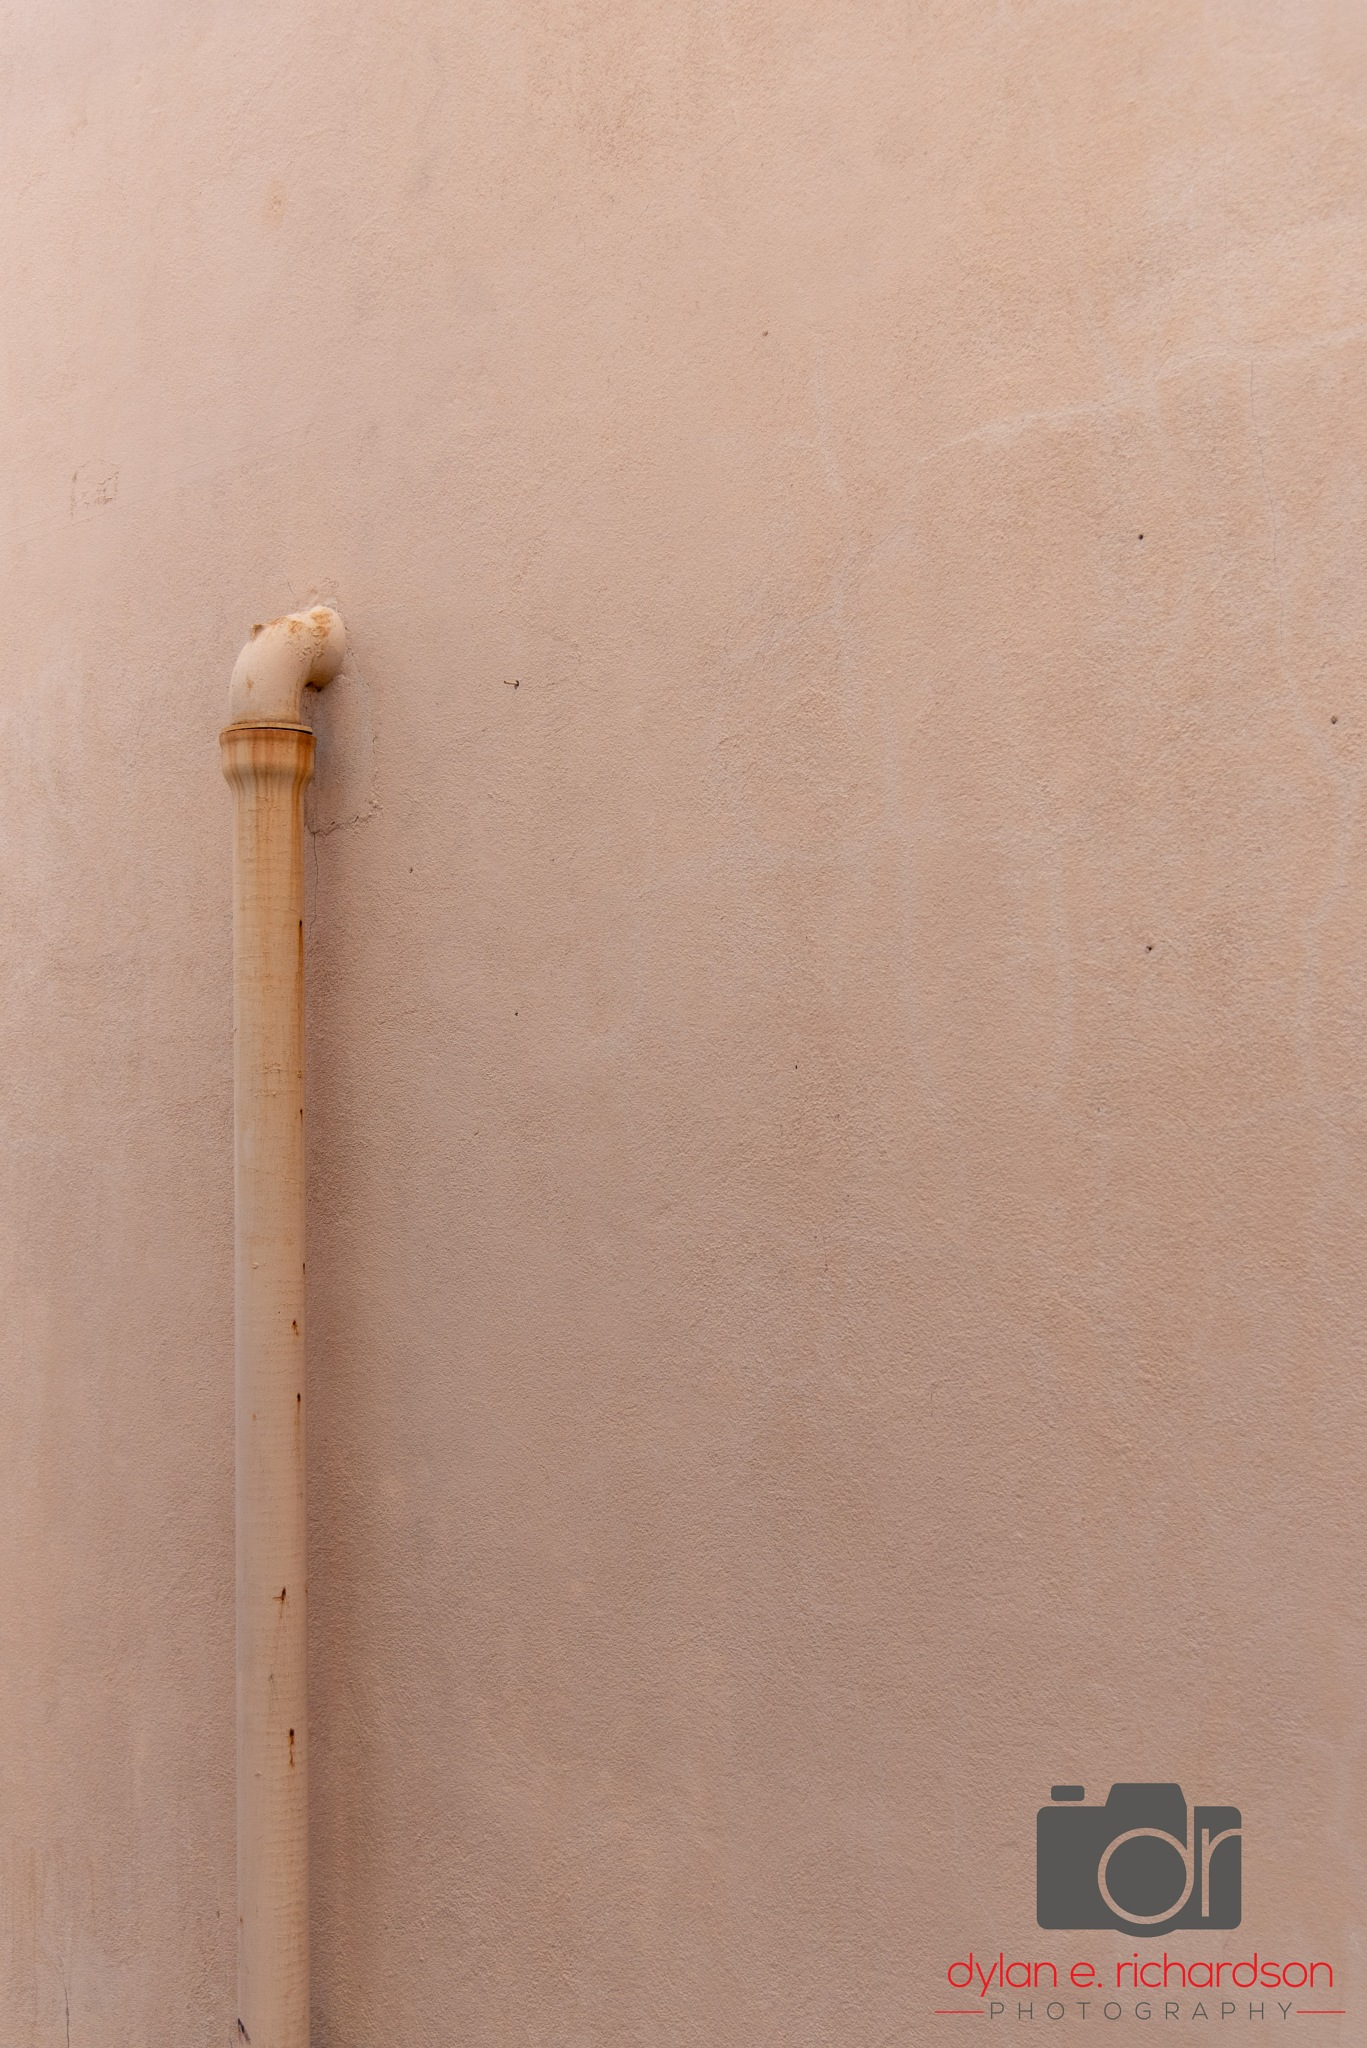 Just a Pipe in the Wall by dronline841